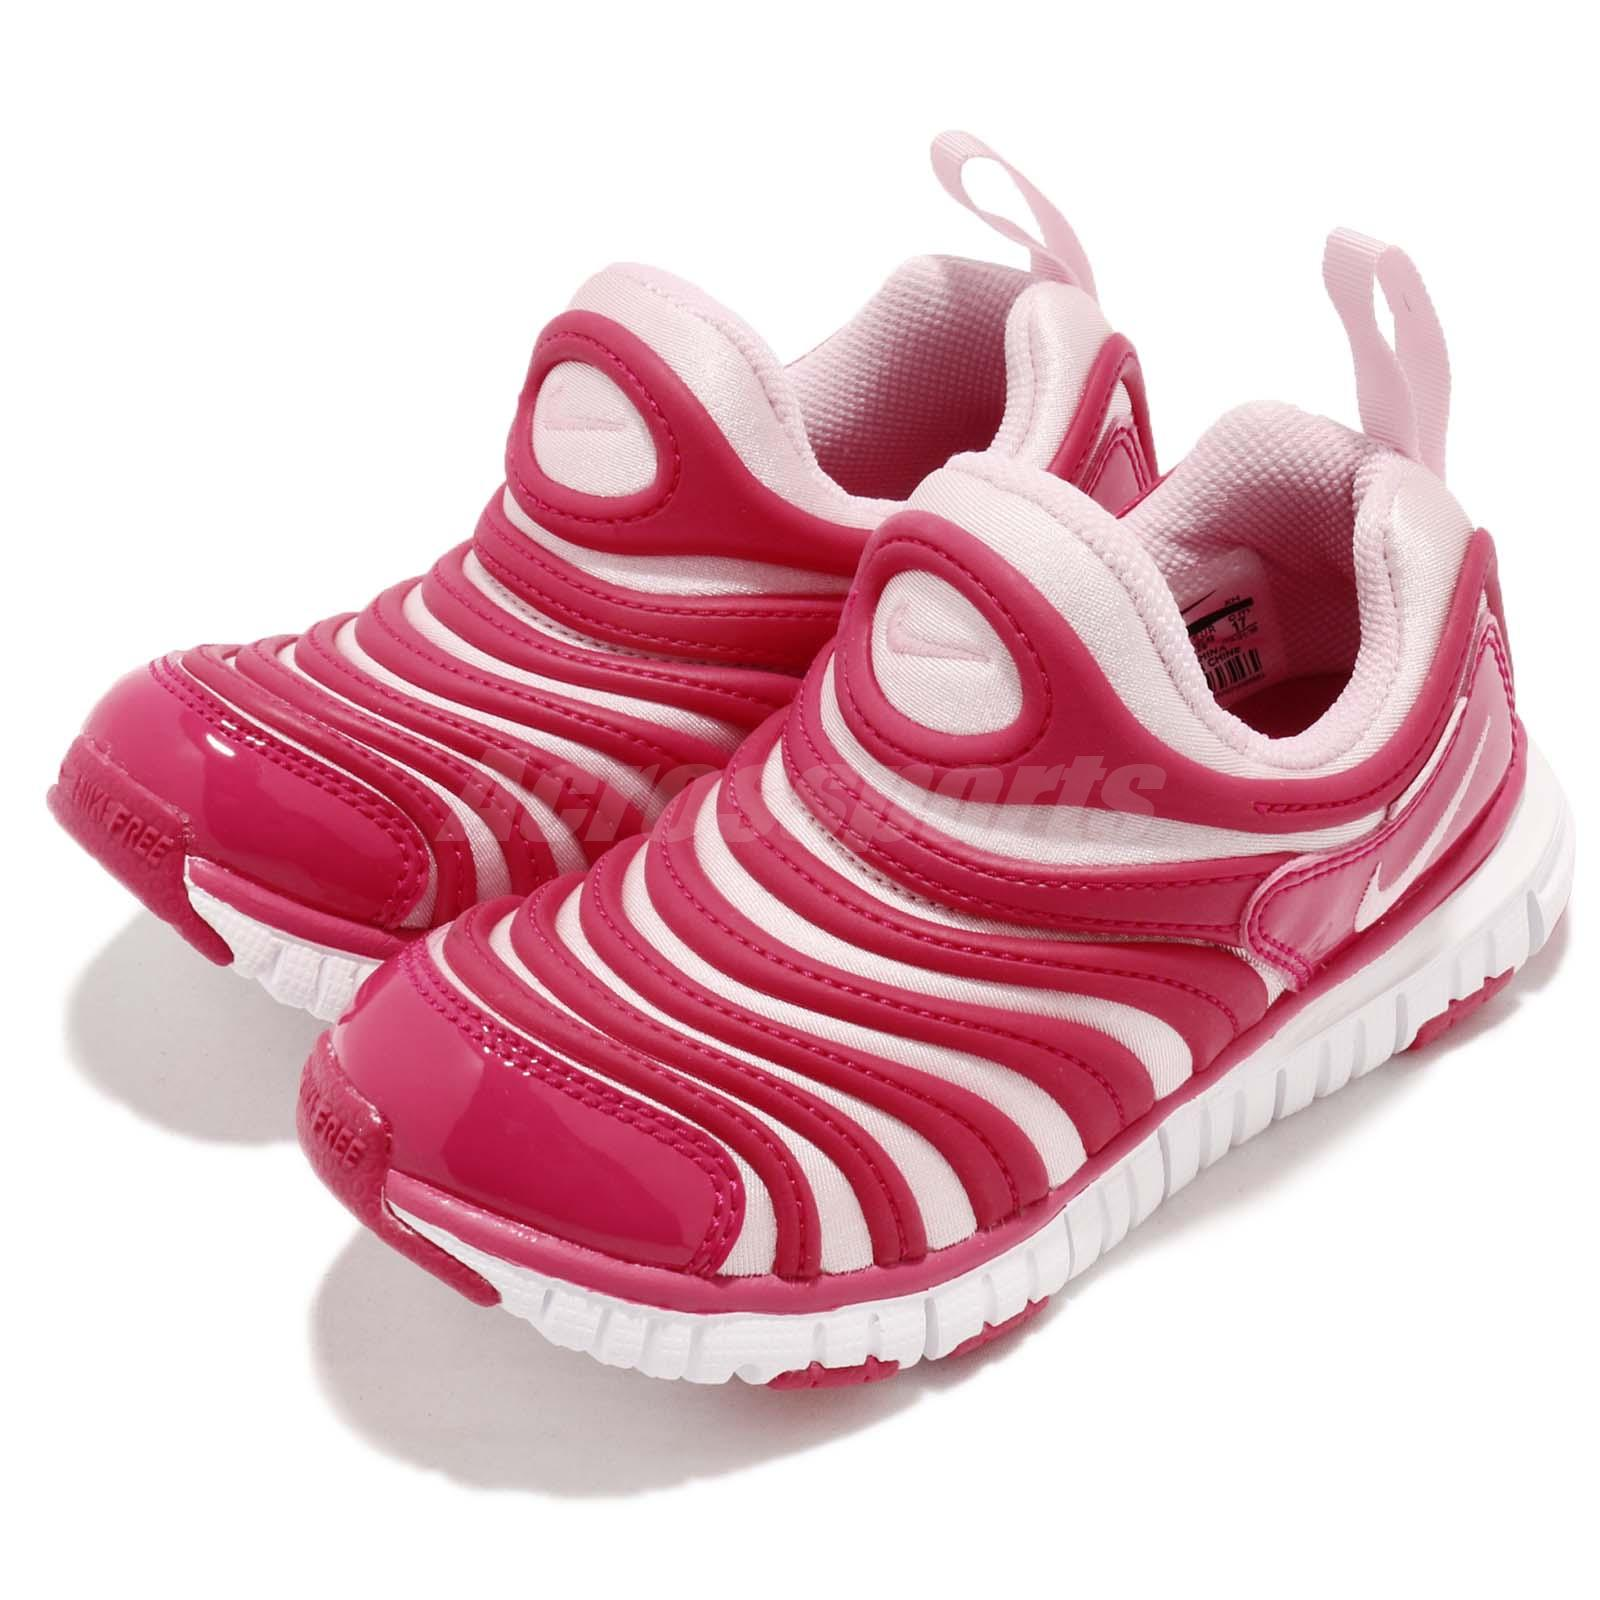 ee41d43557f5a Details about Nike Dynamo Free PS Pink White Preschool Girls Running Shoes  Sneakers 343738-626